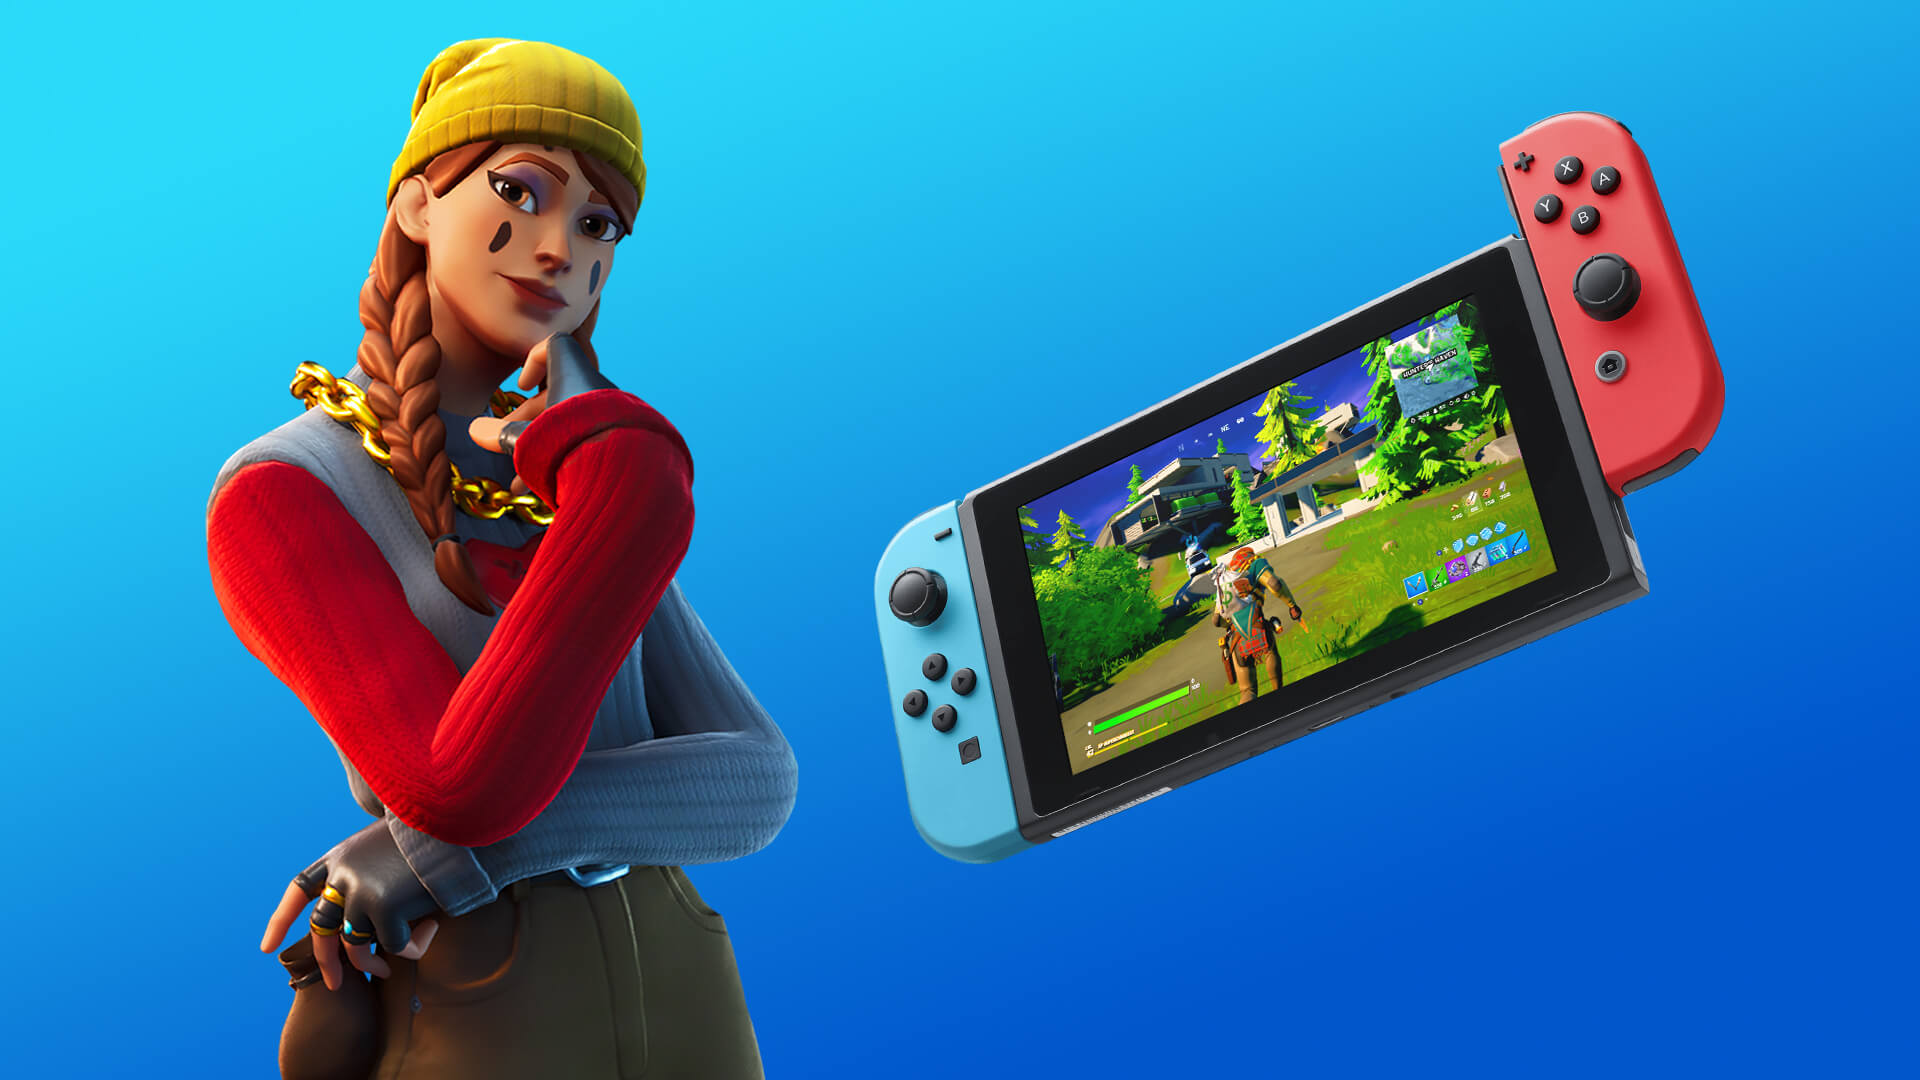 Fortnite: Update improves graphics on the Nintendo Switch